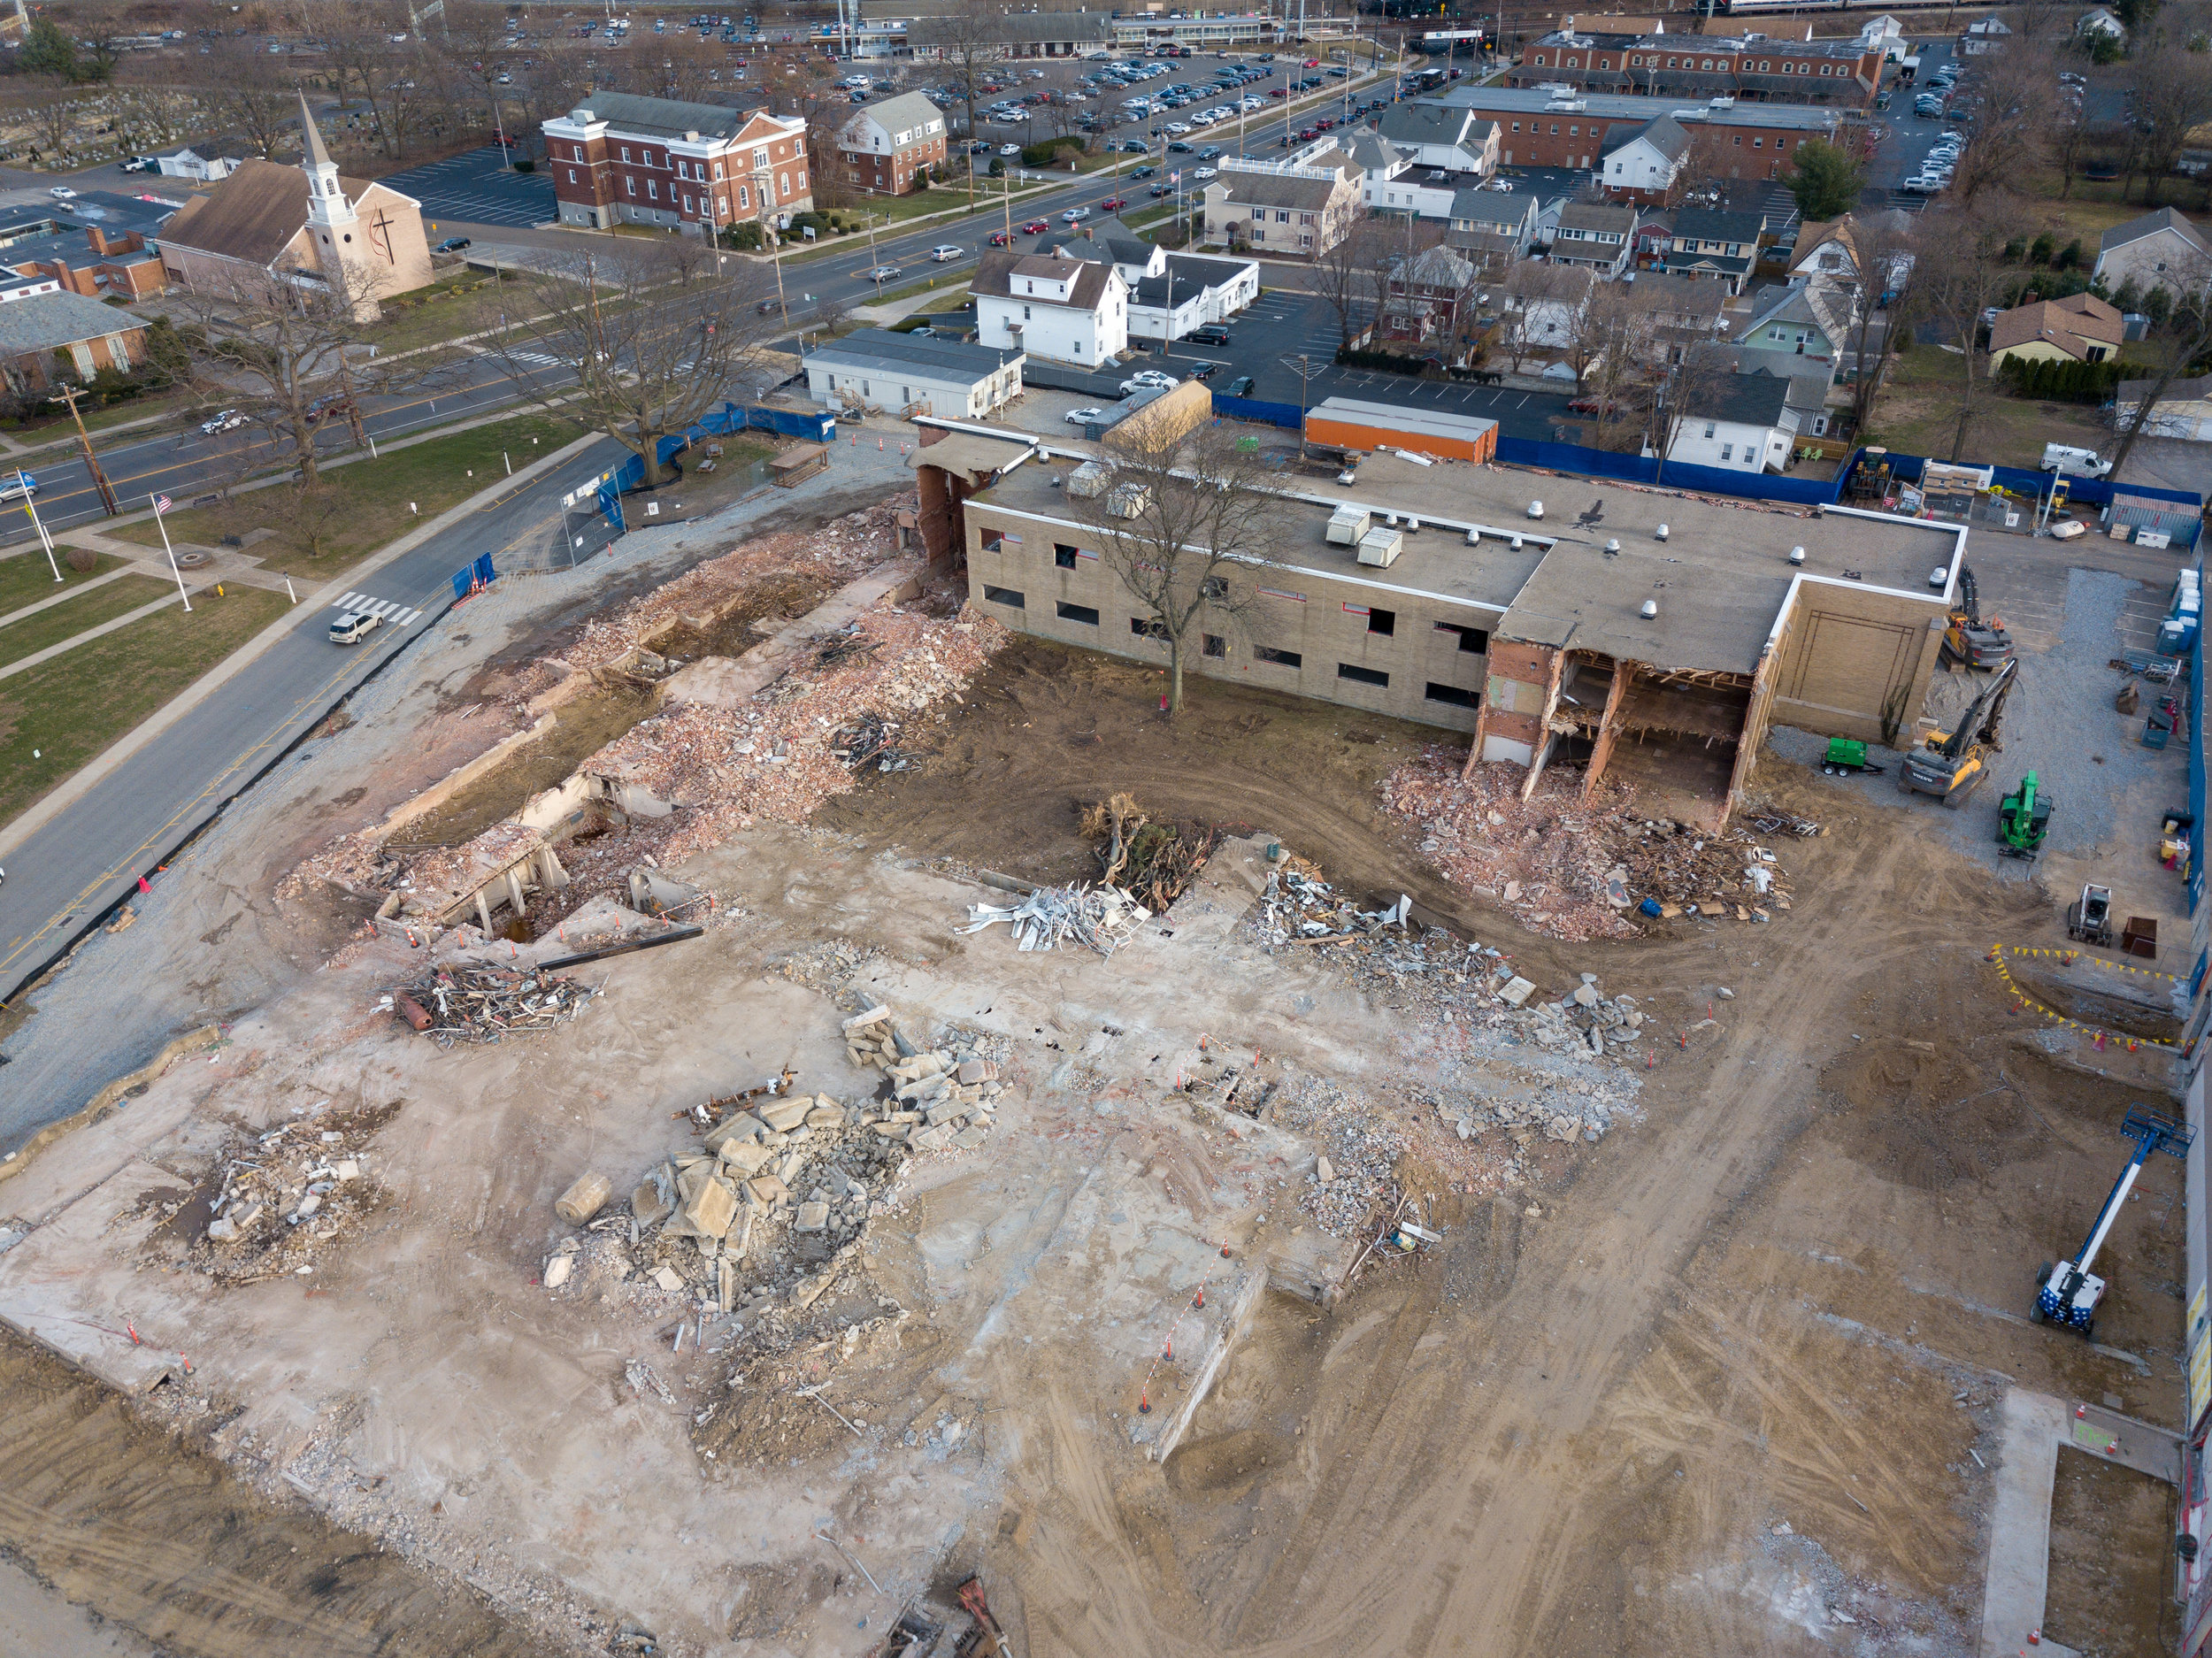 Stratford High School Construction - 2019-04-04 _ 0006.jpg